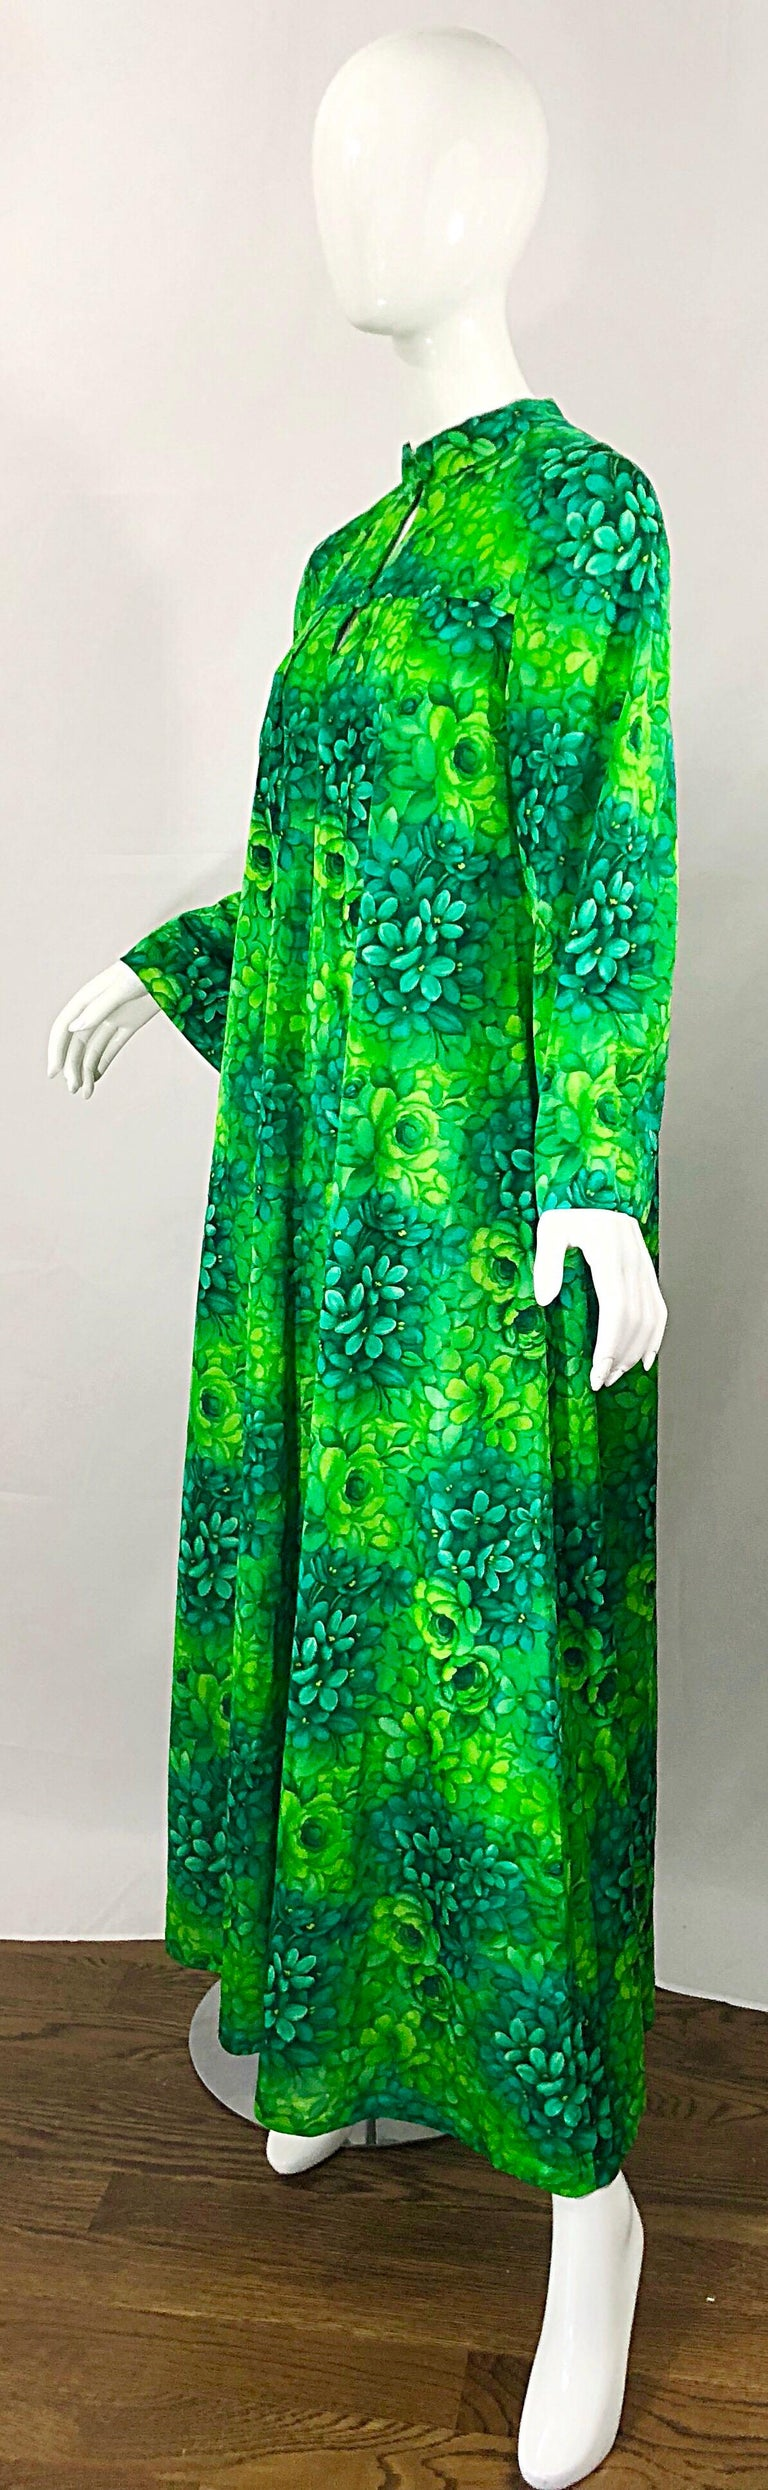 Amazing 1970s Neon + Kelly Green Abstract Flower Print 70s Vintage Caftan Dress For Sale 2